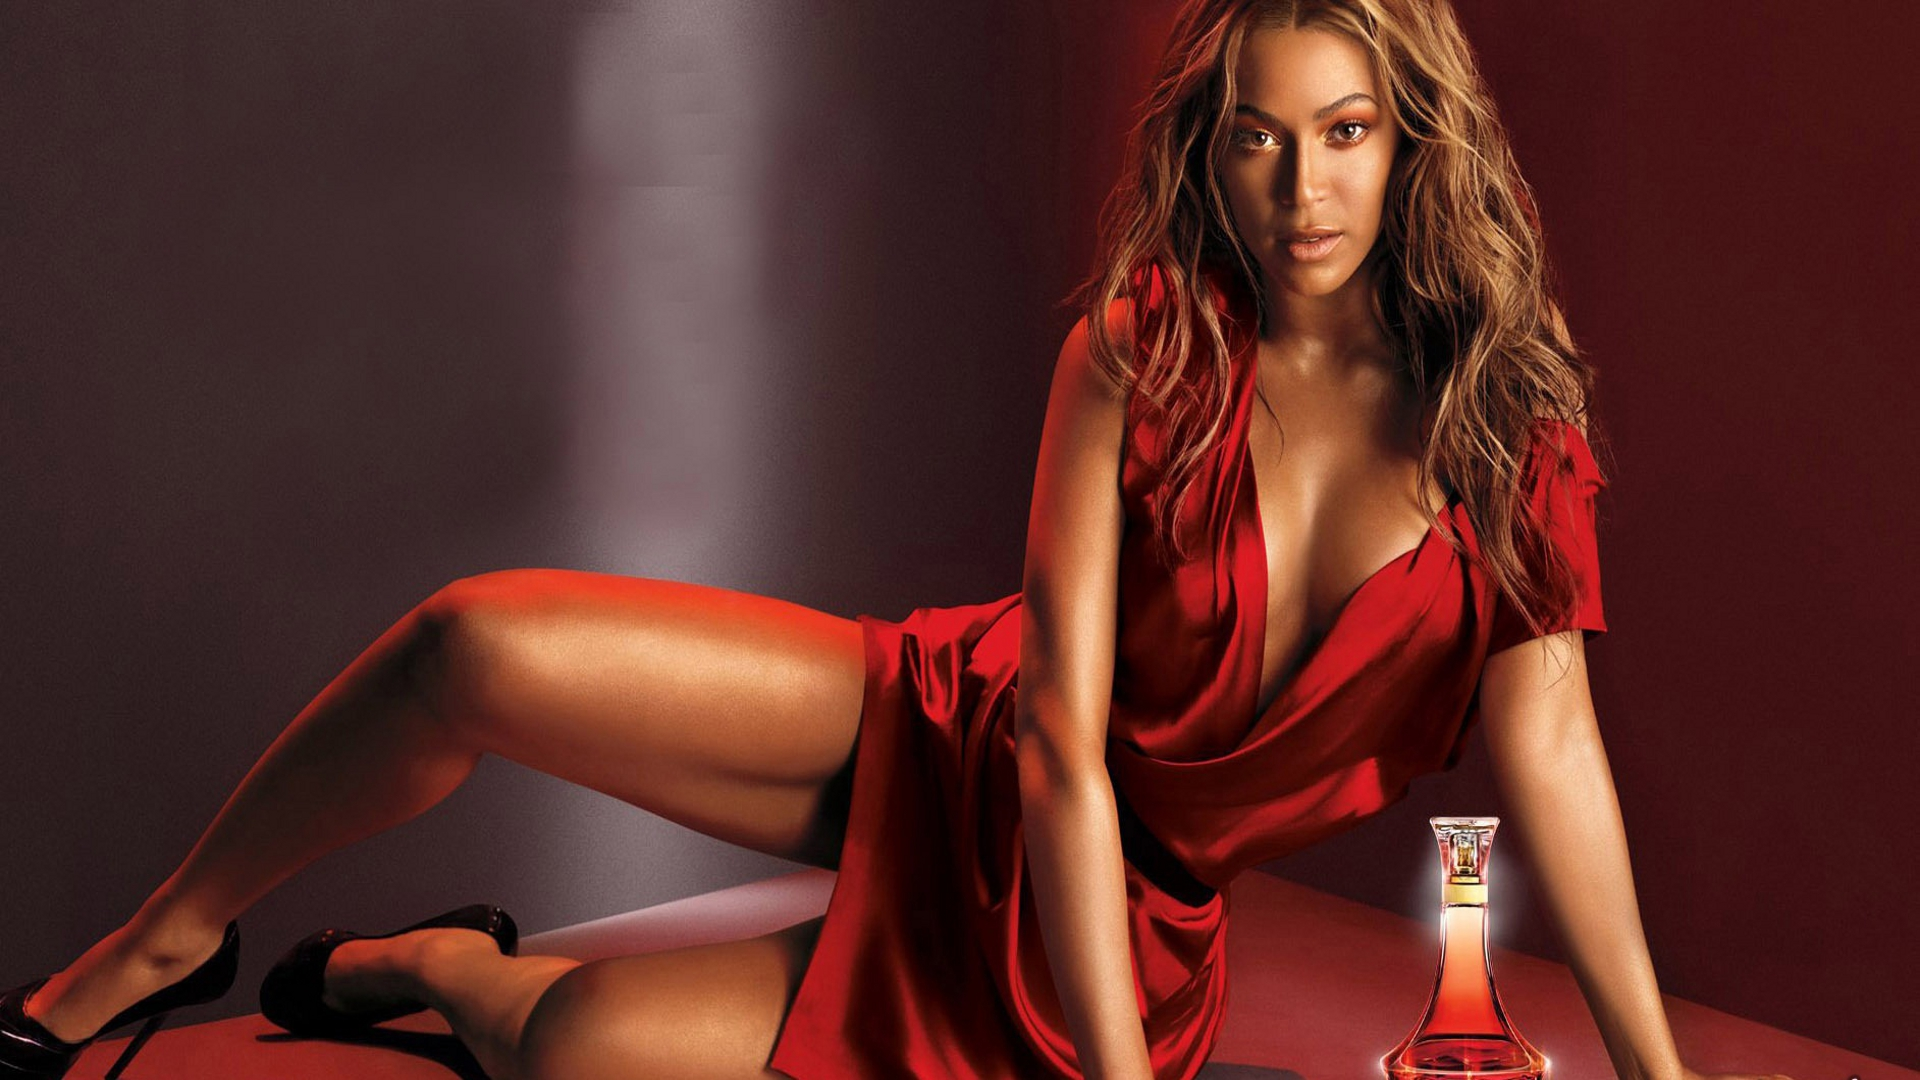 Werbeaufnahme von BEYONC… f¸r ihr neues Parfum 'Heat'. - BEYONCE LAUNCHES HER NEW FRAGRANCE 'HEAT' 2010 PROMO 74018 EDITORIAL USE ONLY BEYONCE SCENTS THE MONEY! After the debut of her new perfume HEAT a month ago, the sales of the fragrance have topped $3 million. 72,000 bottles were sold in just over an hour when Beyonce made an appearance in New York City to promote her first fragrance. Beyonce has previously told how pleased she is with Heat - a mix of Magnolia, neroli and blush peach scents. ' I'm so happy with it . I've never received so many compliments from my fans, ' said the superstar singer. Beyonce was involved in all areas of the fragrance's design and the name came from her shows. ' A lot of my performances have had fire involved. Also, red is one of my favourite colours.So Heat seemed the perfect name. ' The singer, who has previously been the face of both Giorgio Armani's Emporio Diamonds and Tommy Hilfiger's True Star, also said the bottles design was vintage inspired. ends